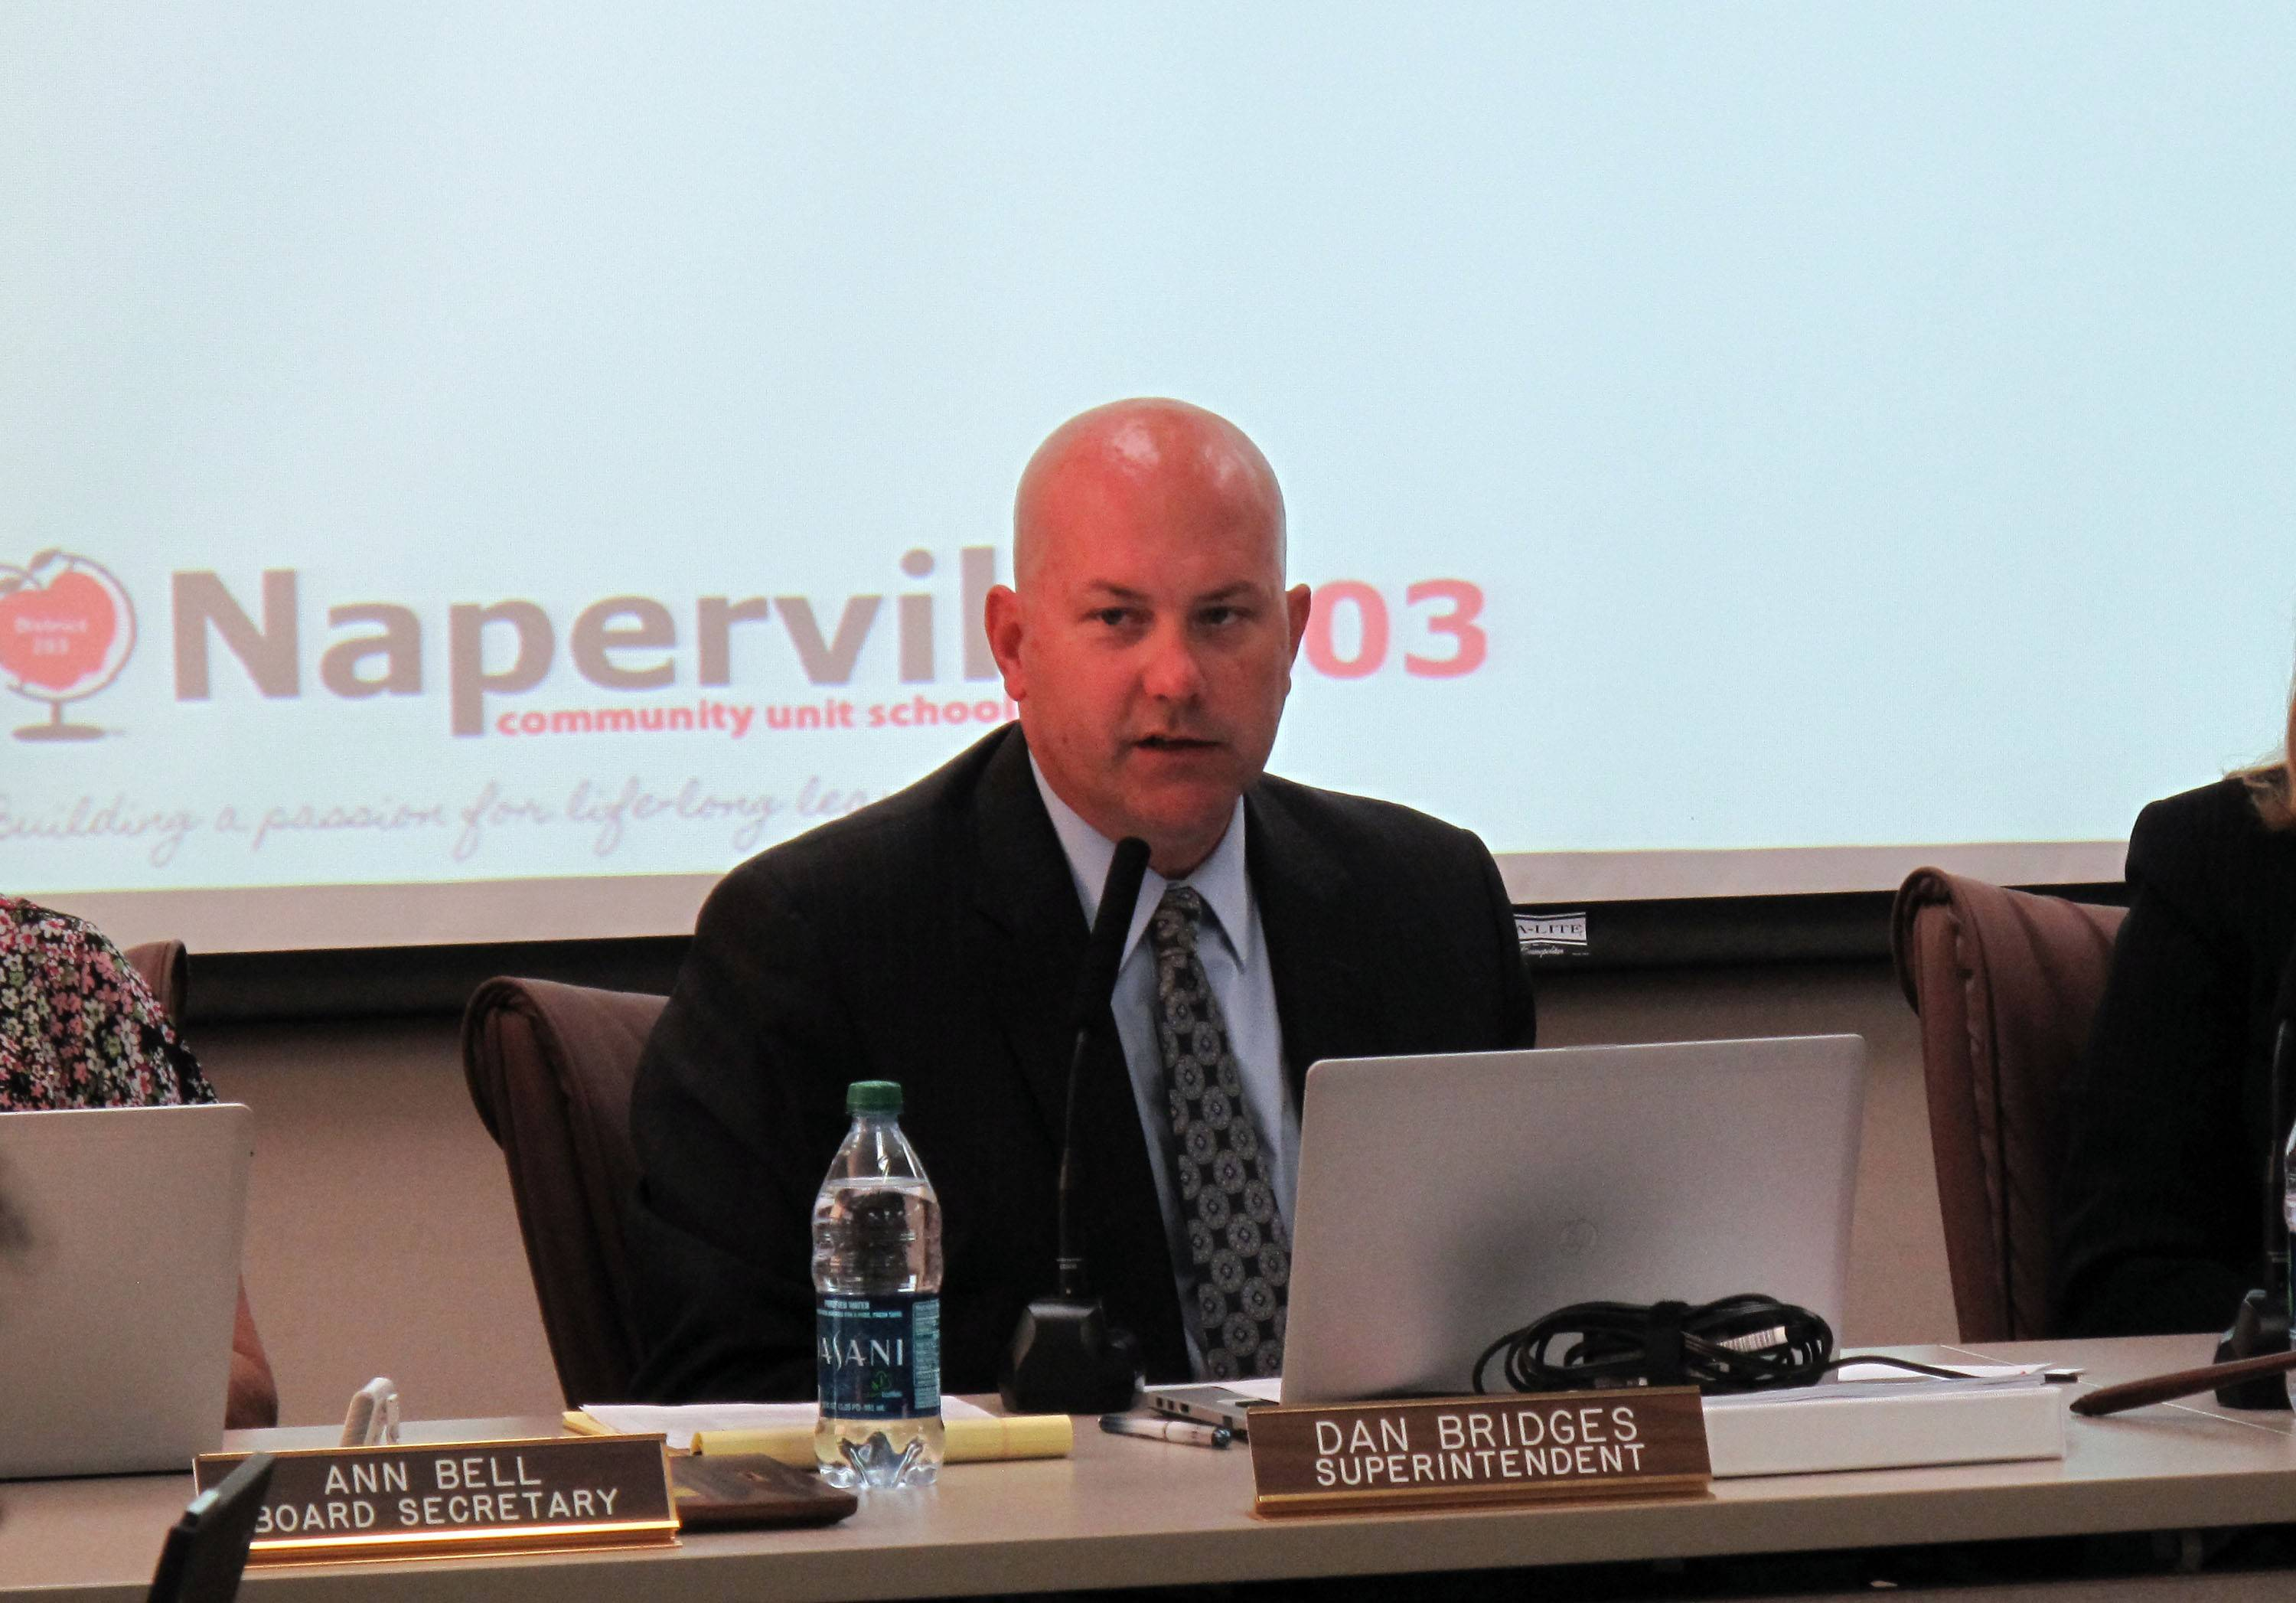 Naperville Unit District 203 Superintendent Dan Bridges says he is looking to find a community member to be a co-chairman for the district's diversity committee as it looks to continue welcoming an increasing population of diverse students and recruiting teachers from various backgrounds.